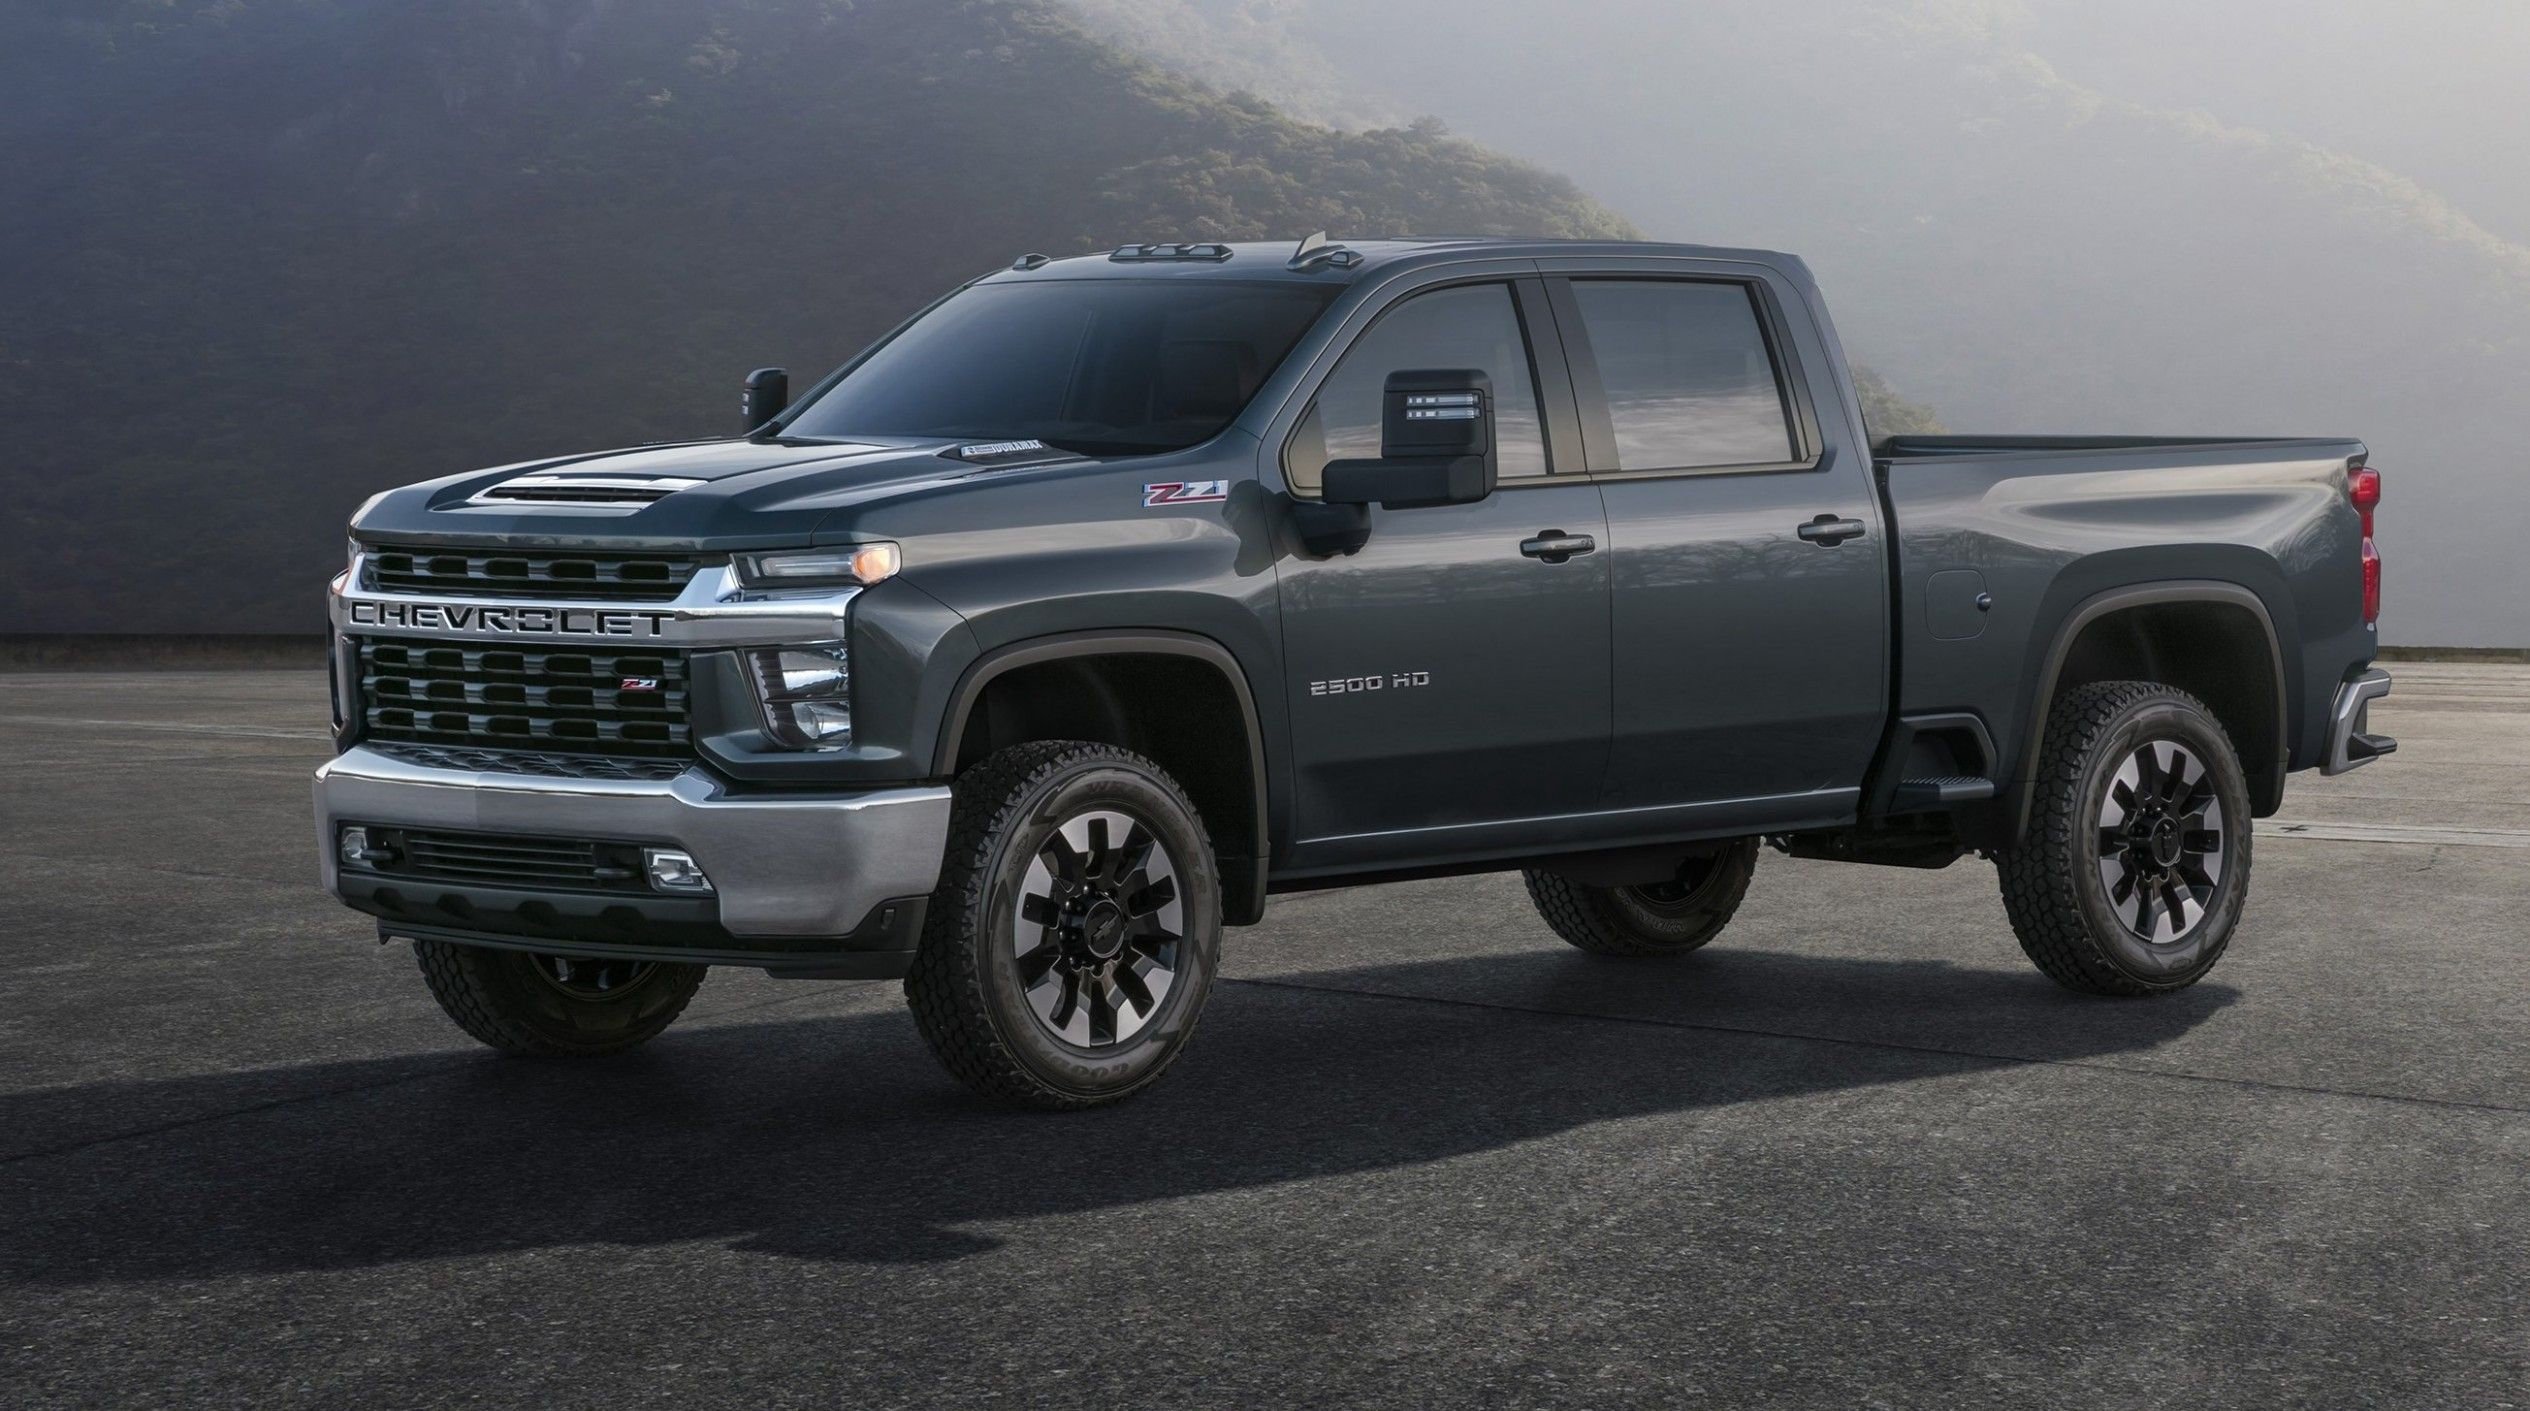 2021 Chevy Silverado 1500 2500 New in 2020 (With images